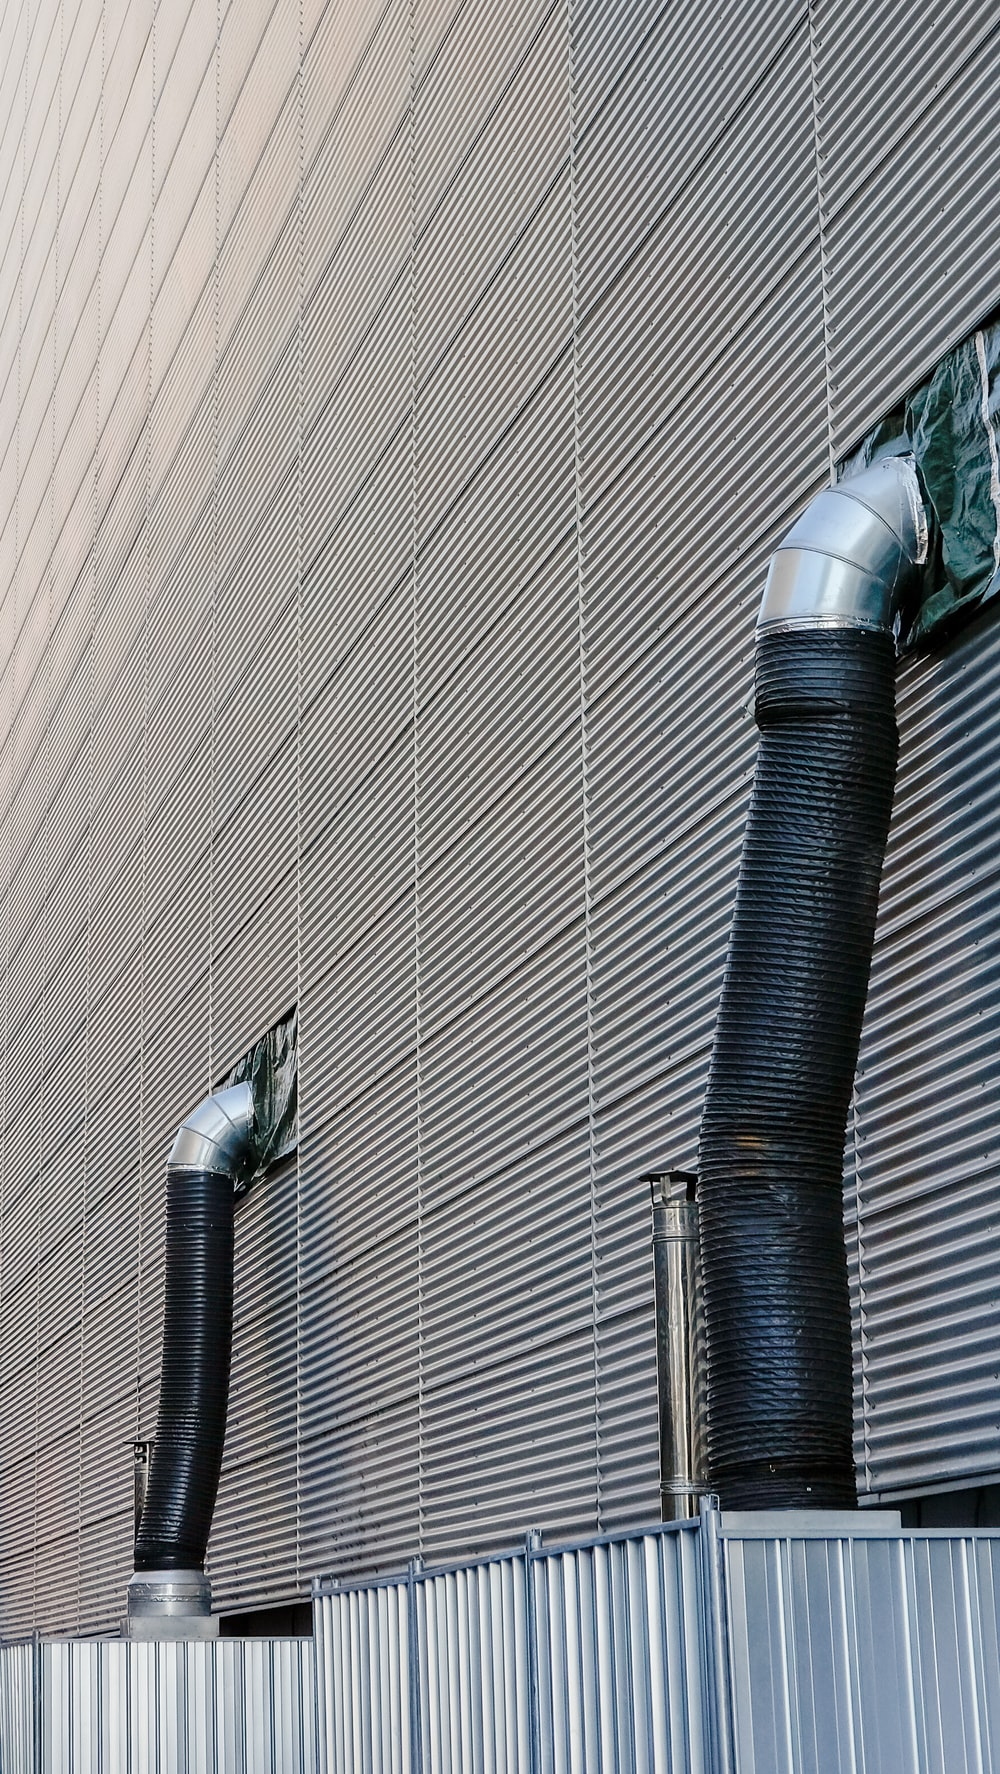 two gray and black hose outdoor